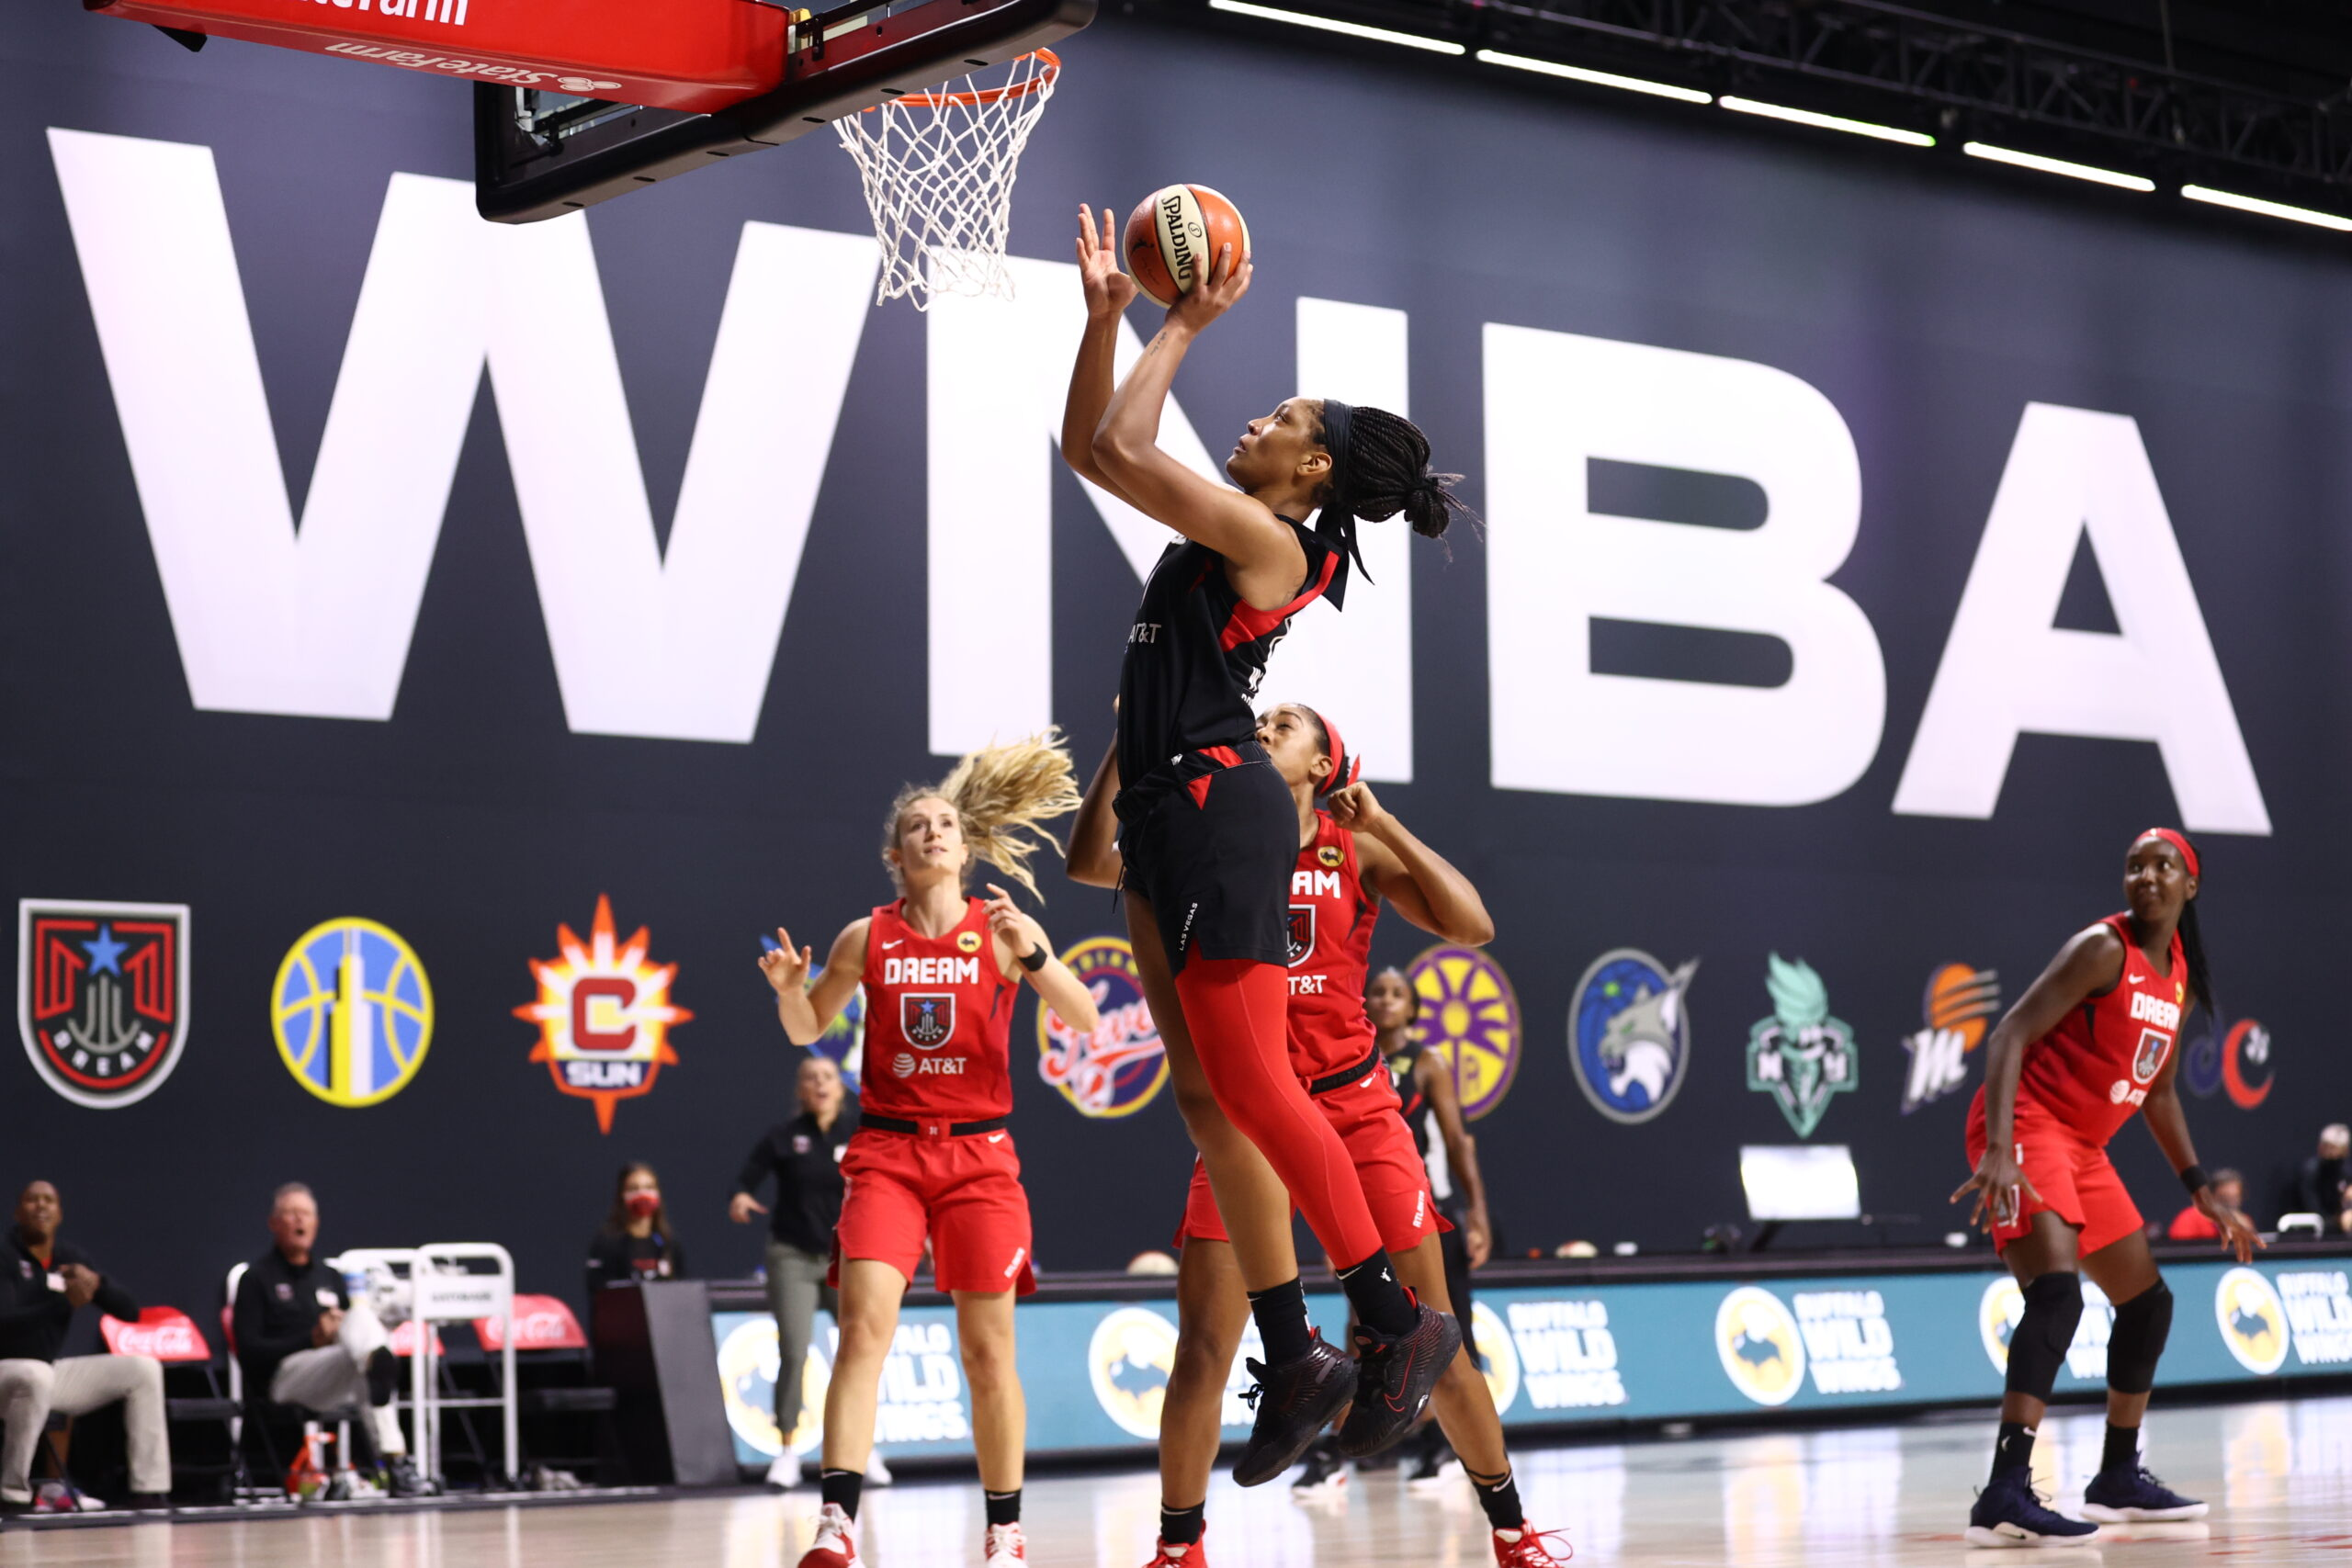 A'ja Wilson named 2020 WNBA Player of the Year, Cheryl Reeve wins COY, Crystal Dangerfield earns ROY